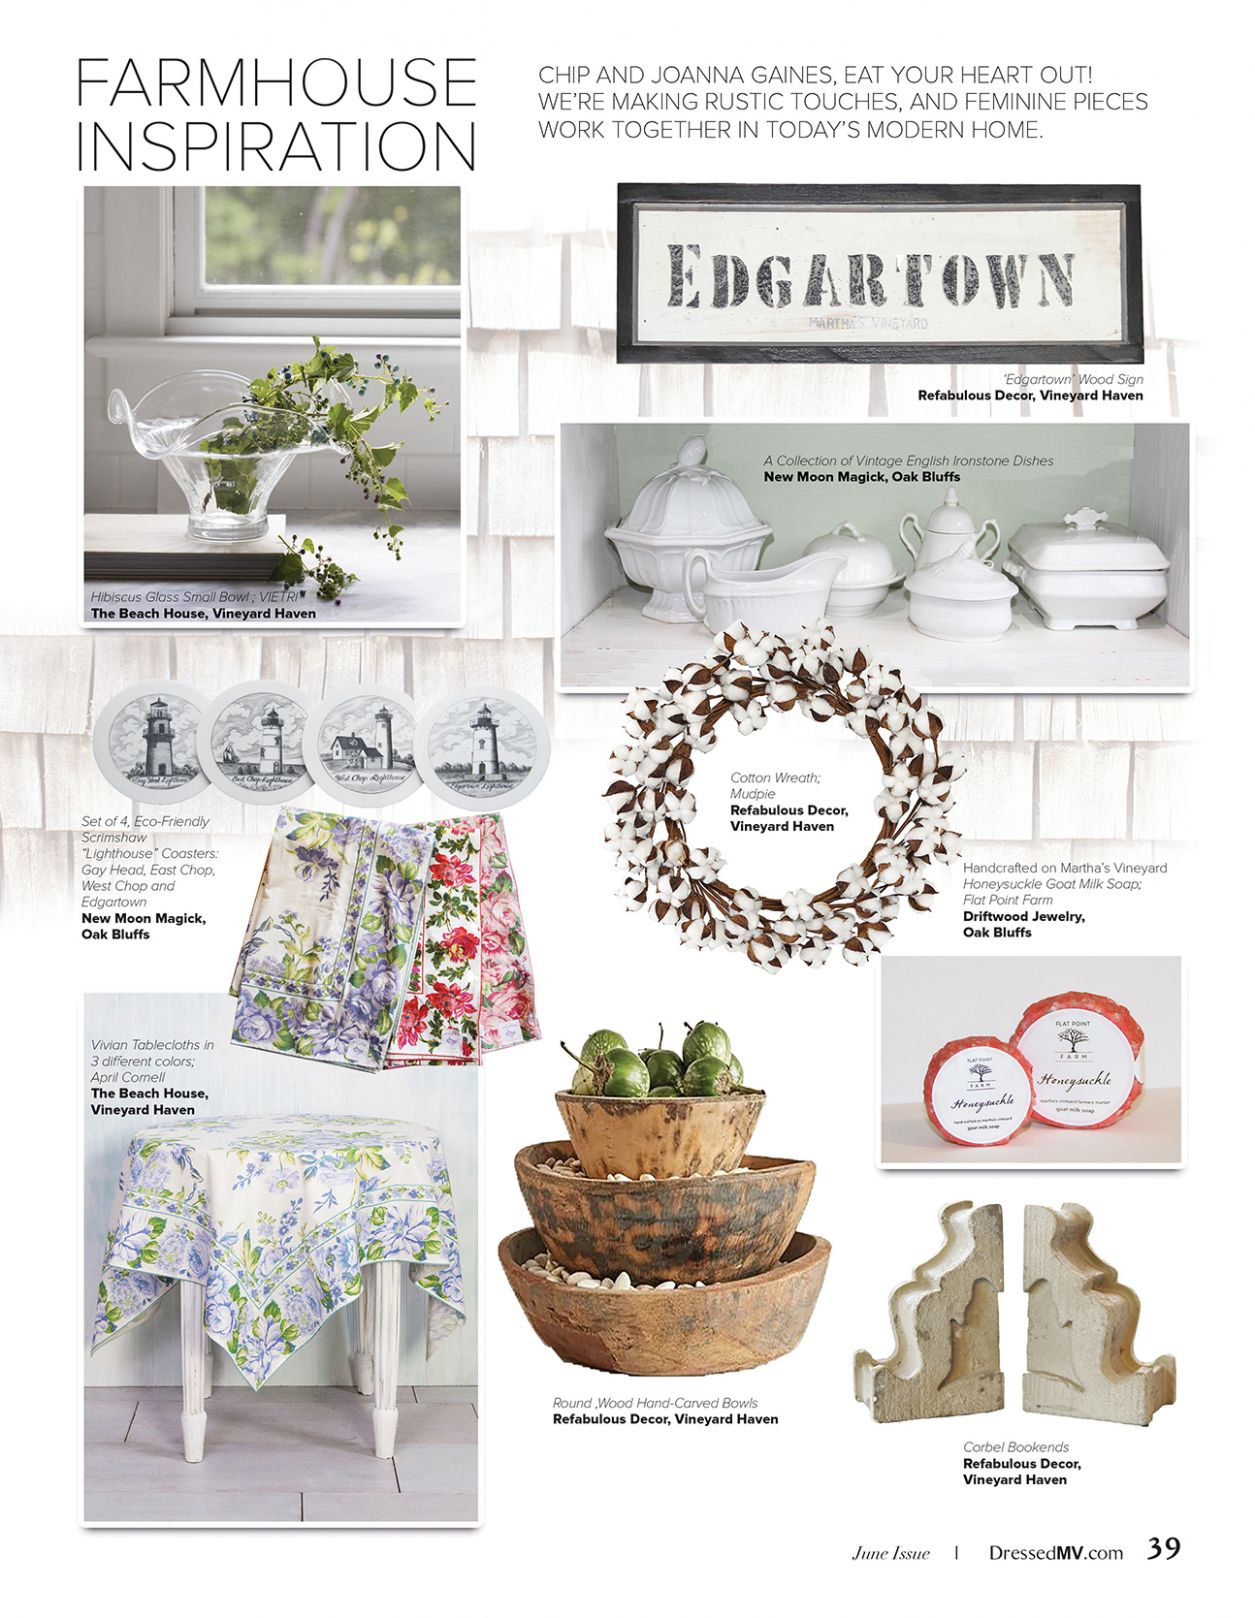 Dressed MV » Fashion | Style | Home » FARMHOUSE INSPIRATION - inspiration haven house